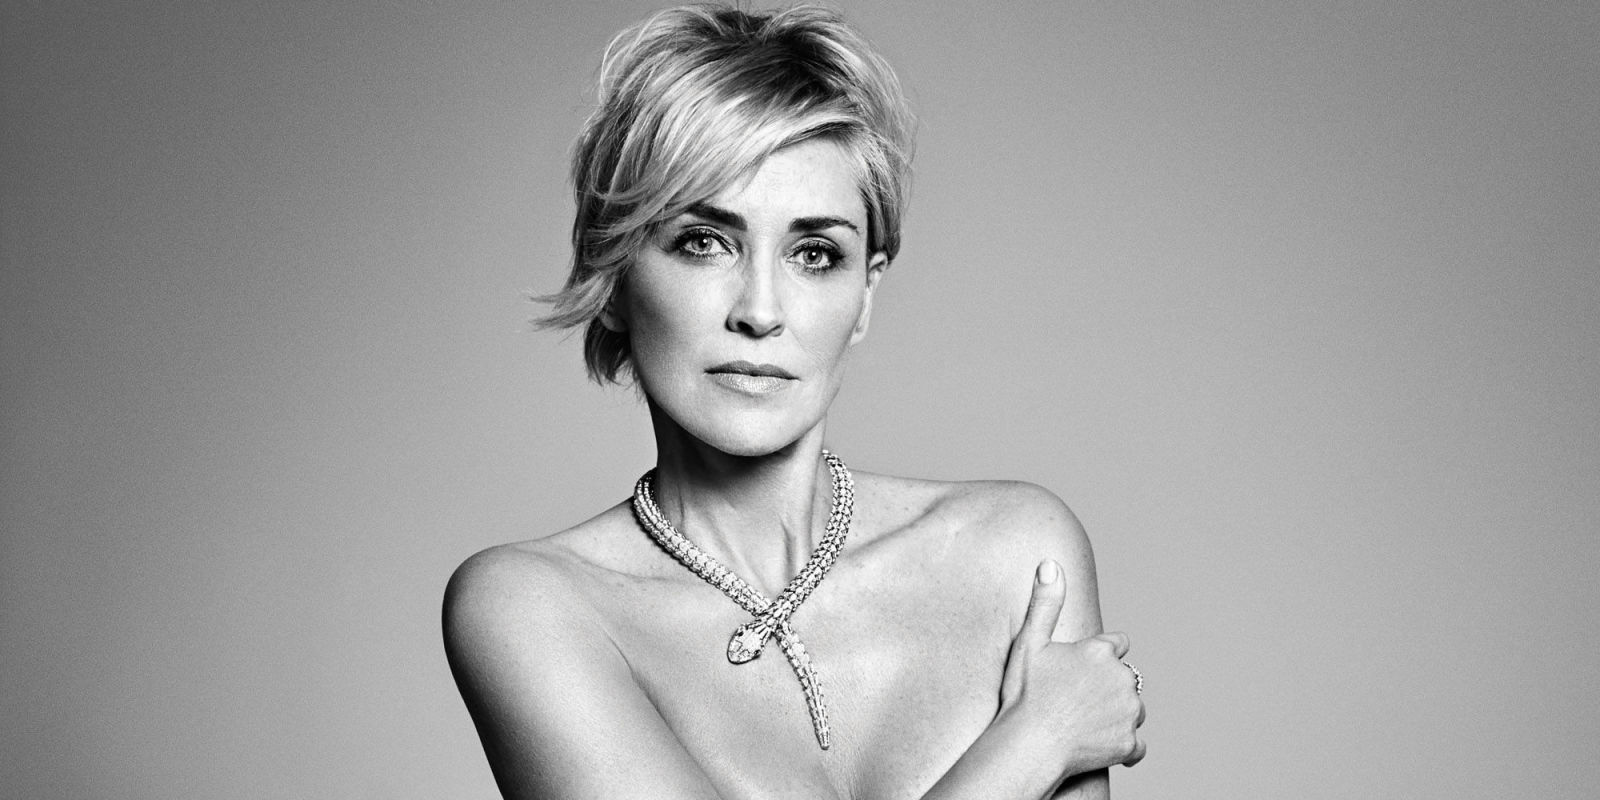 Sharon stone goes nude in harper 39 s bazaar september 2015 - Carmen bejarano ...